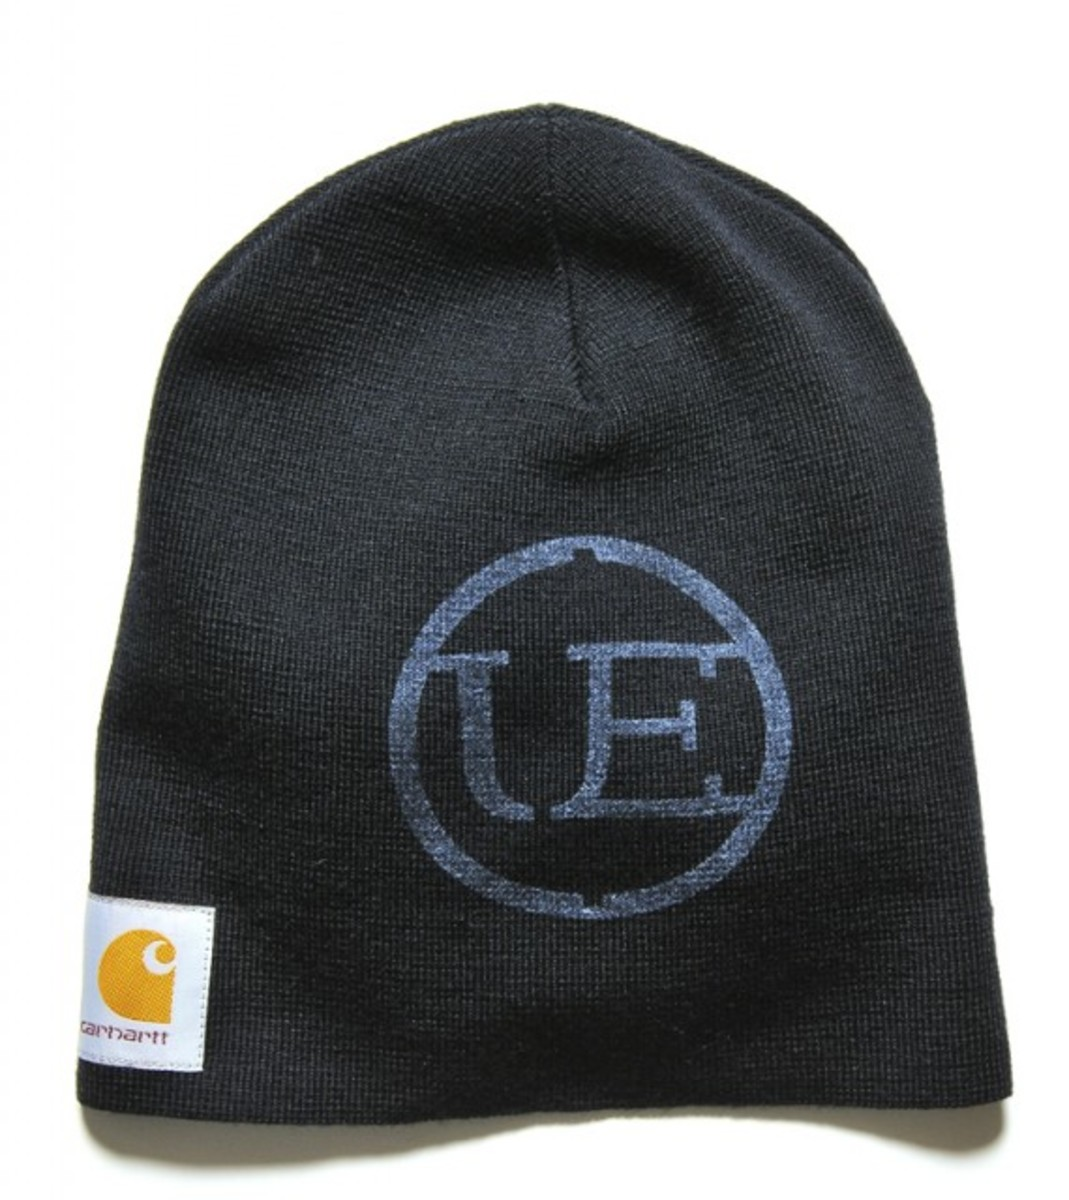 uniform-experiment-carhartt-knit-cap-07